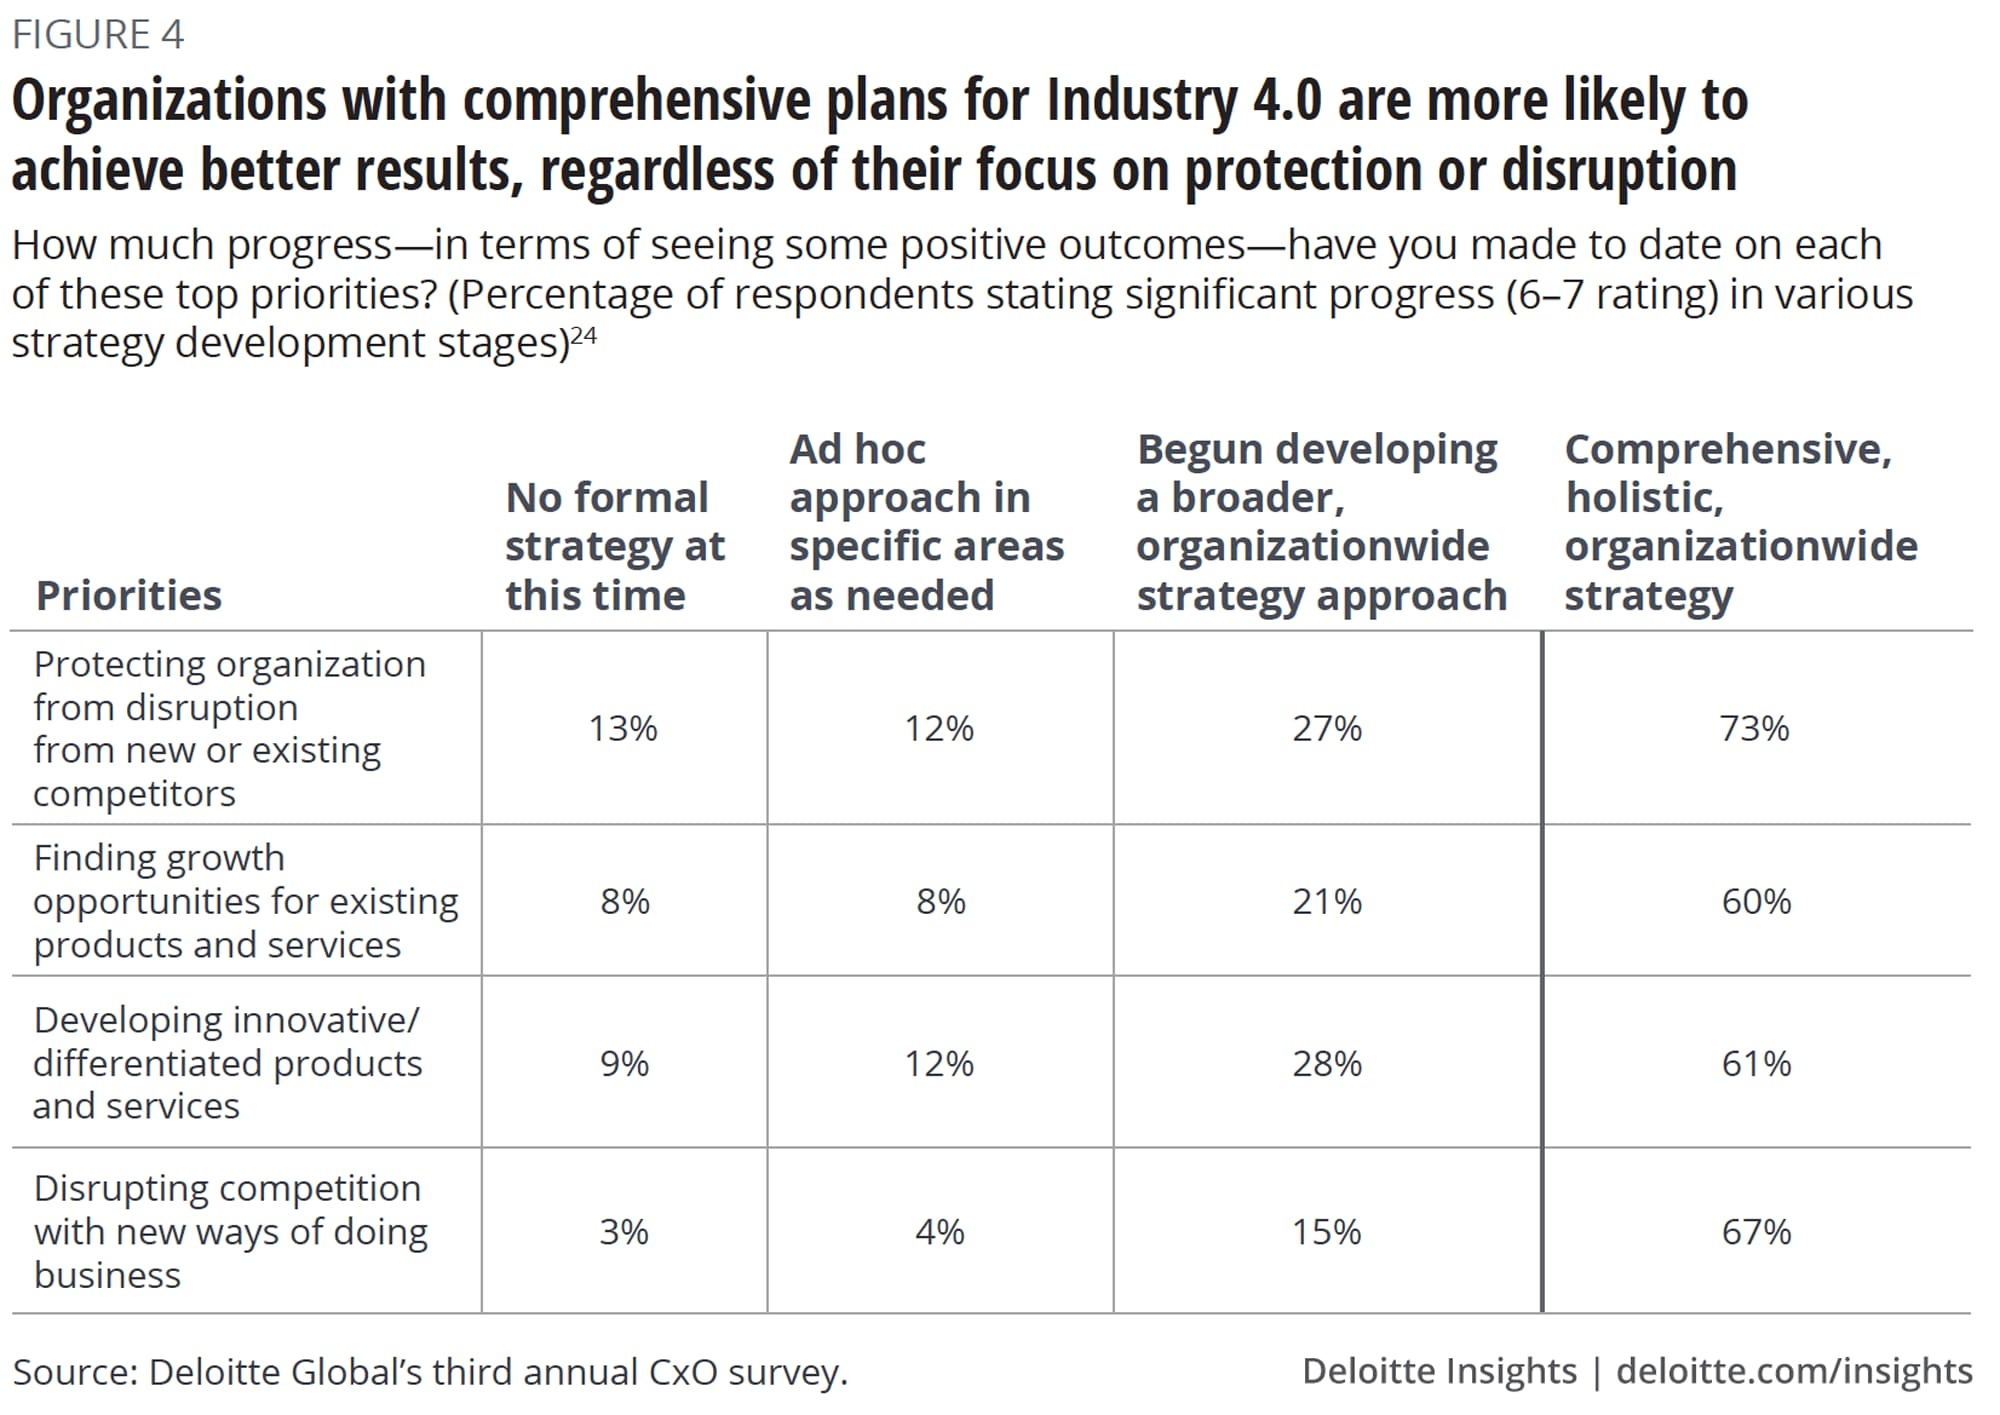 Organizations with comprehensive plans for Industry 4.0 are more likely to achieve better results, regardless of their focus on protection or disruption